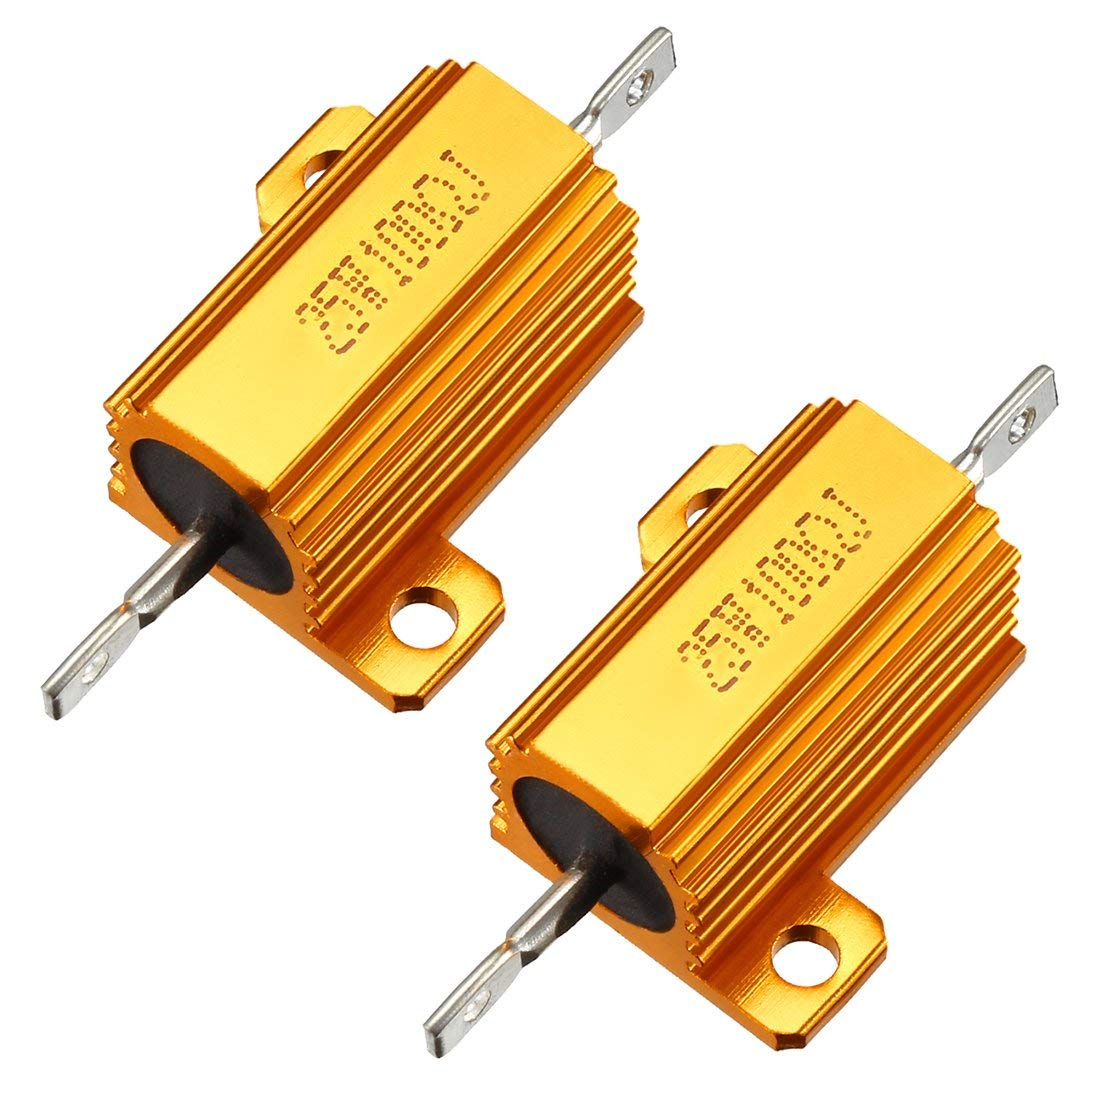 sourcingmap 25W 12 Ohm 5/% Aluminum Housing Resistor Screw Tap Mounted Aluminum Case Wirewound ResistorGold Tone RX24 25W12RJ 2 pcs